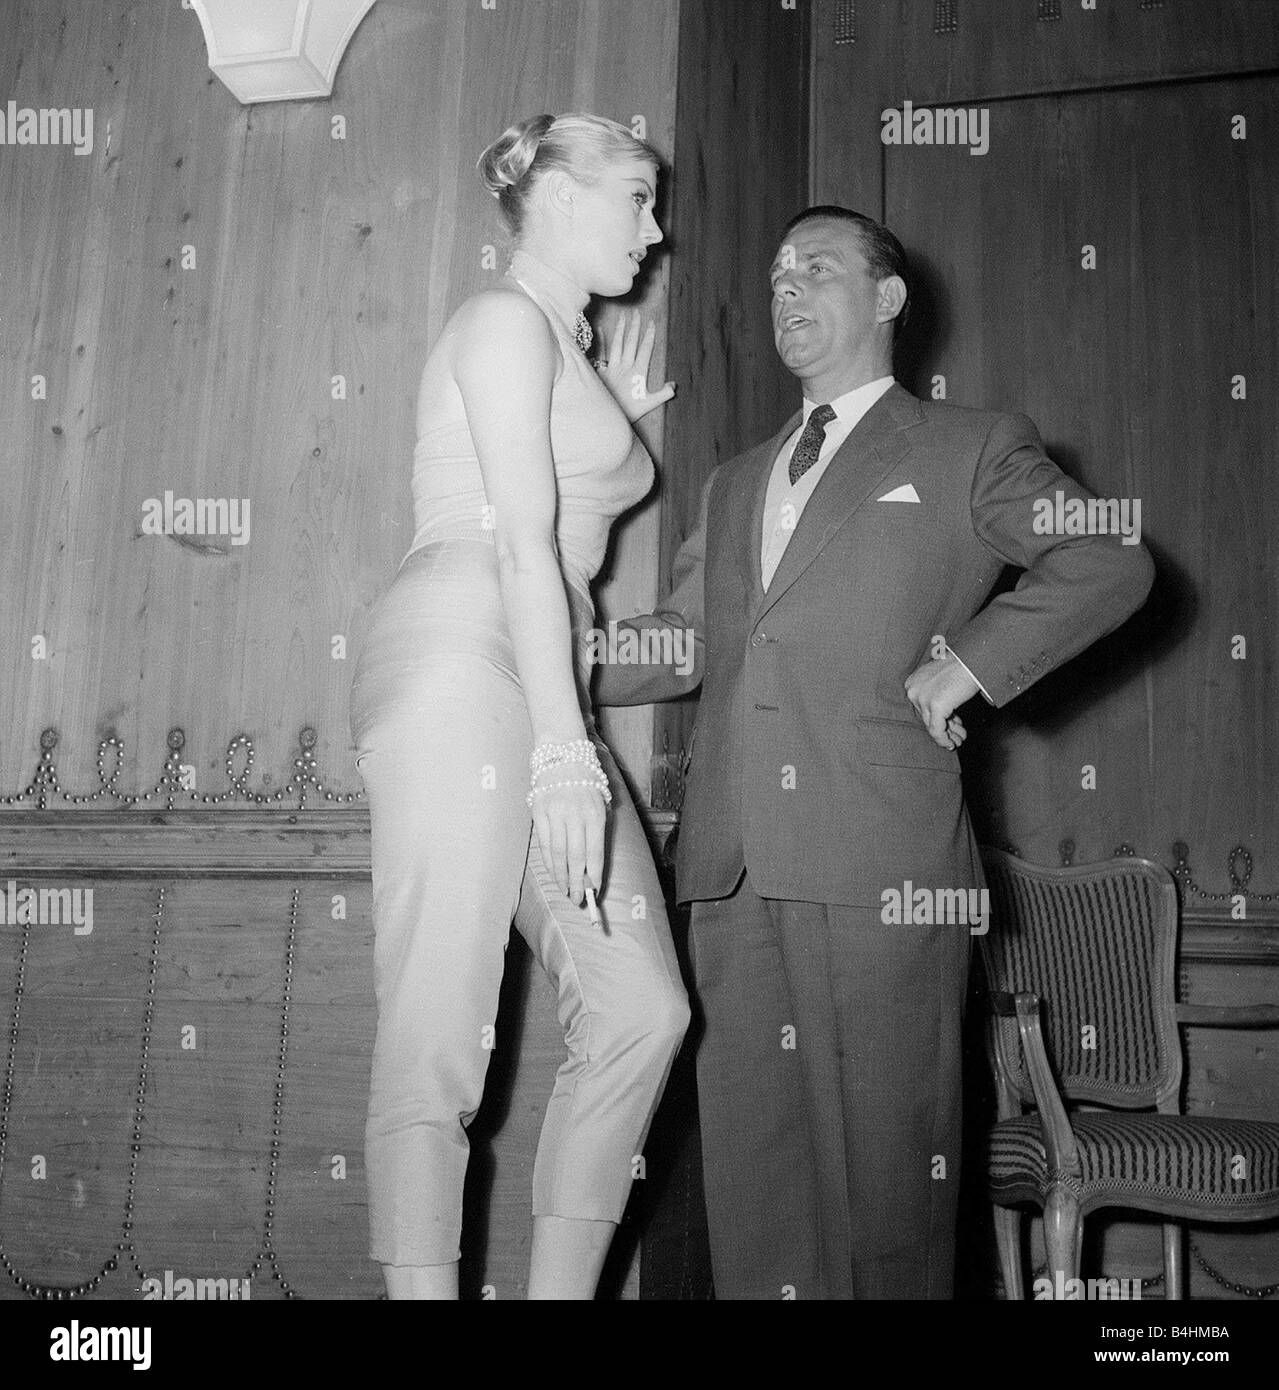 Actor Norman Wisdom with actress Anita Ekberg at the Savoy Hotel in London May 1956 - Stock Image